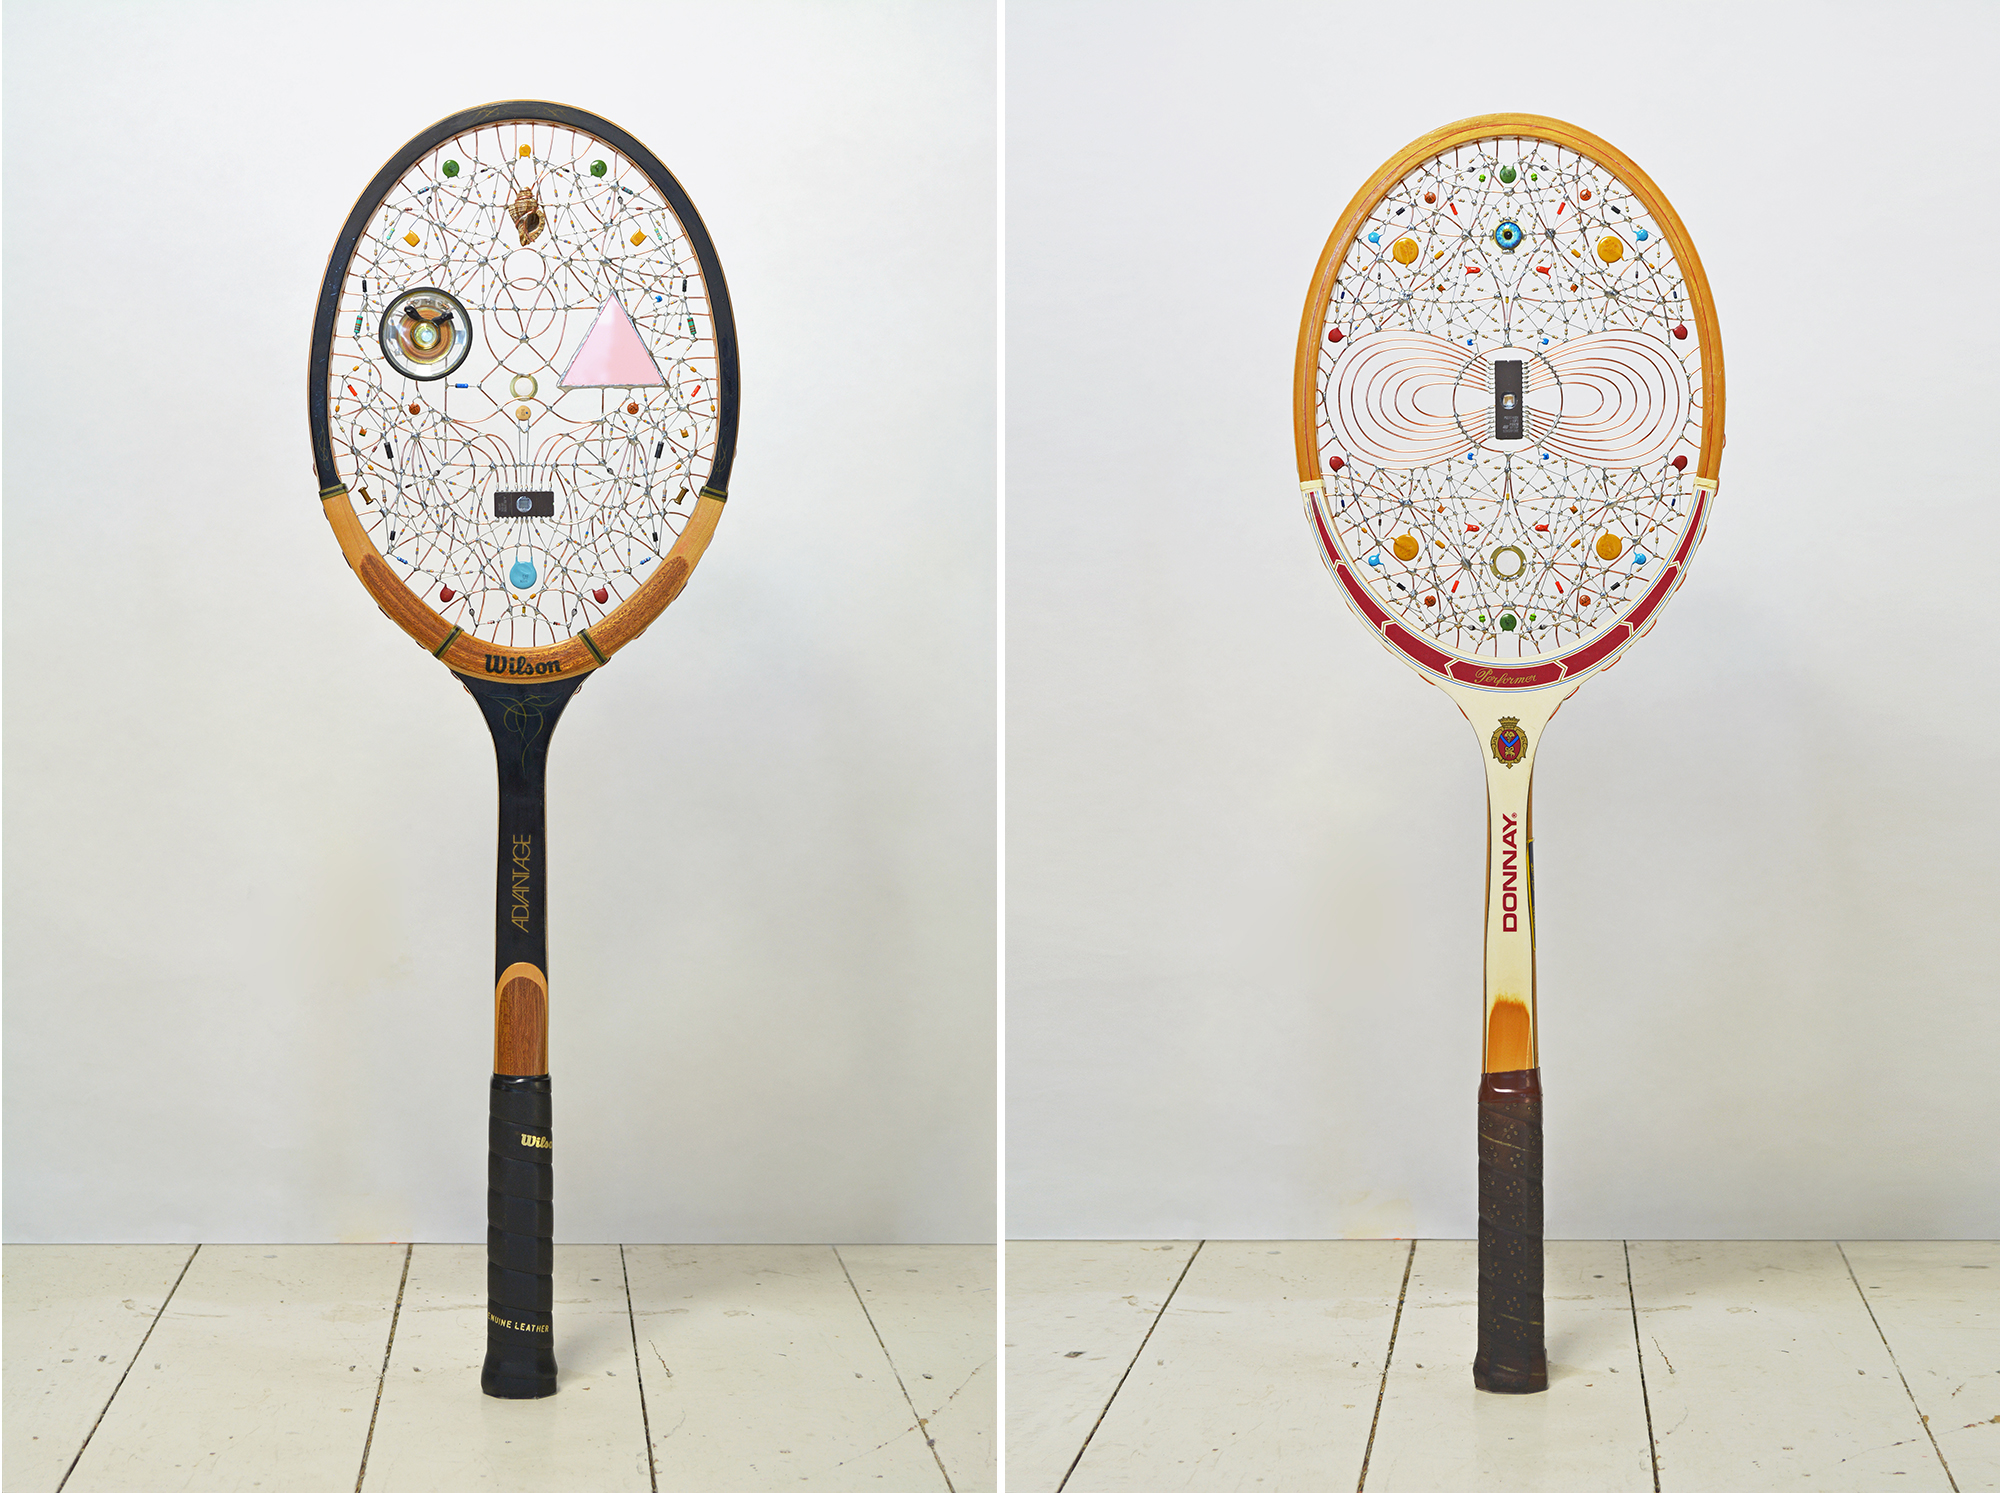 Constellations of Found Electronics Shape Faces on Vintage Rackets by Artist Leonardo Ulian